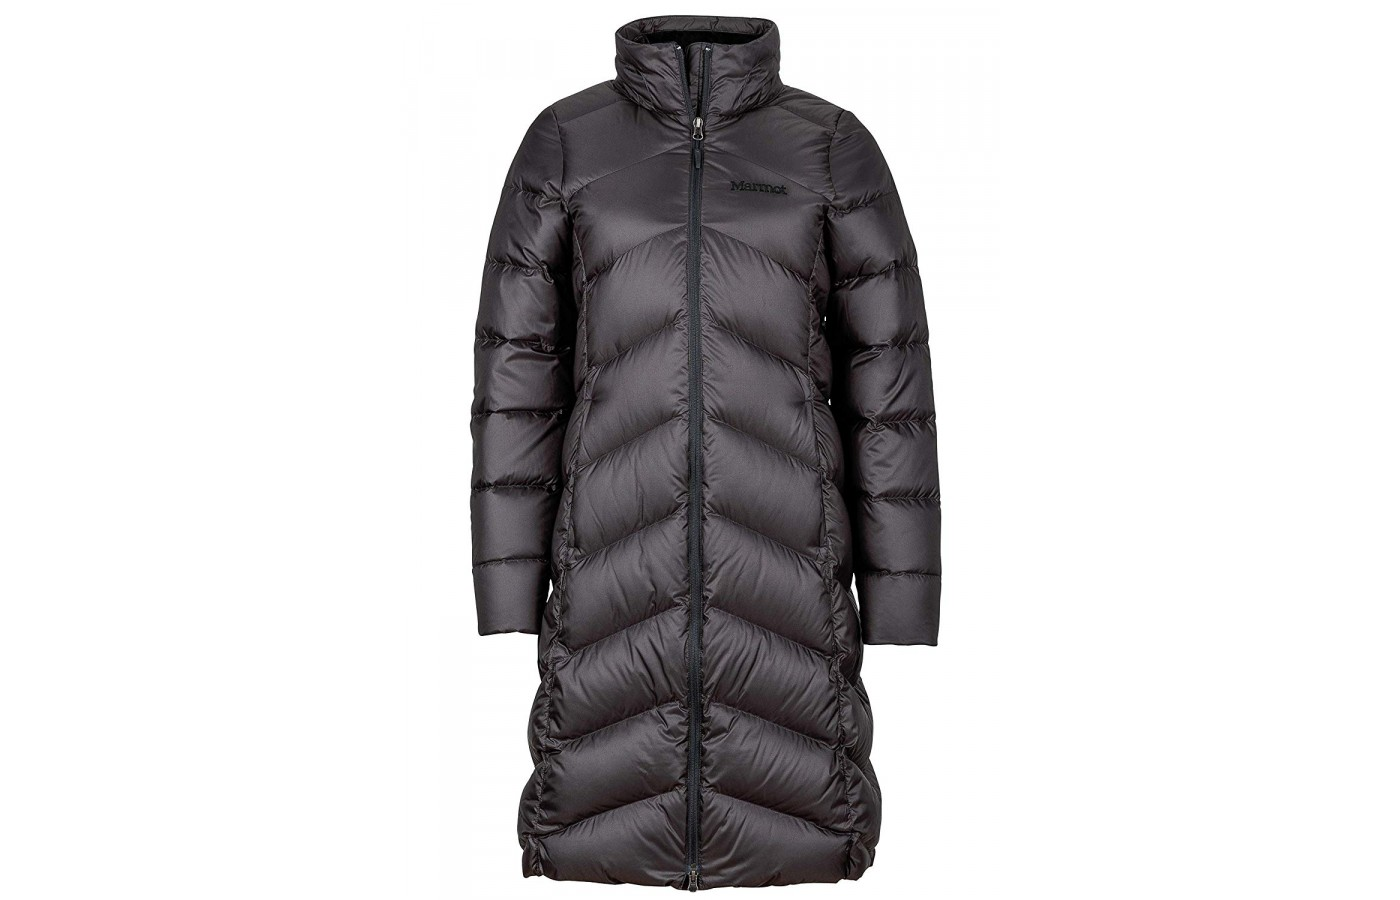 Marmot did a great job controlling the down and maintaining a form-fitting, flattering look for a warm jacket.